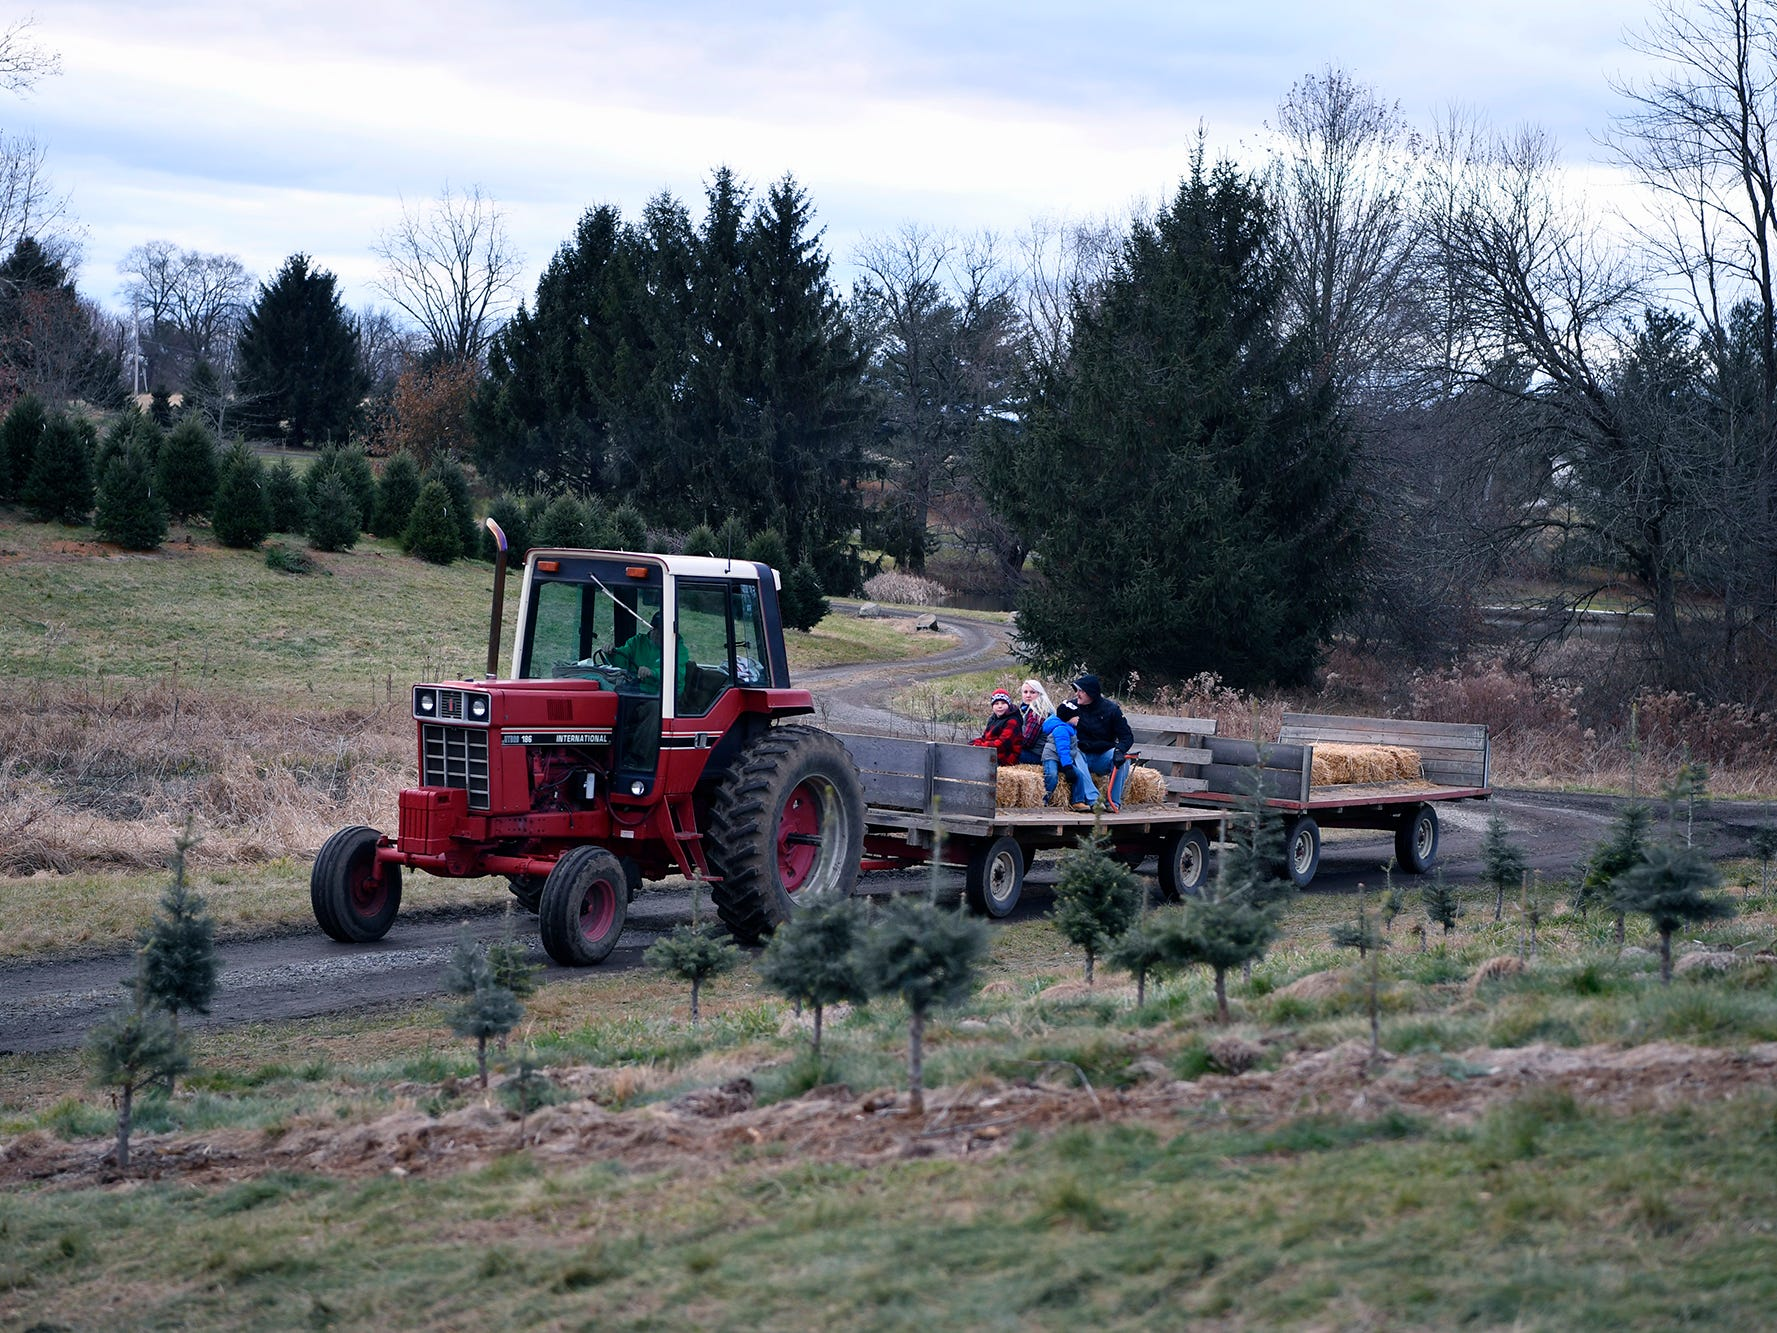 A tractor takes families out to search McCurdy's Tree Farm in Dillsburg for the perfect Christmas tree, Monday, December 3, 2018. 